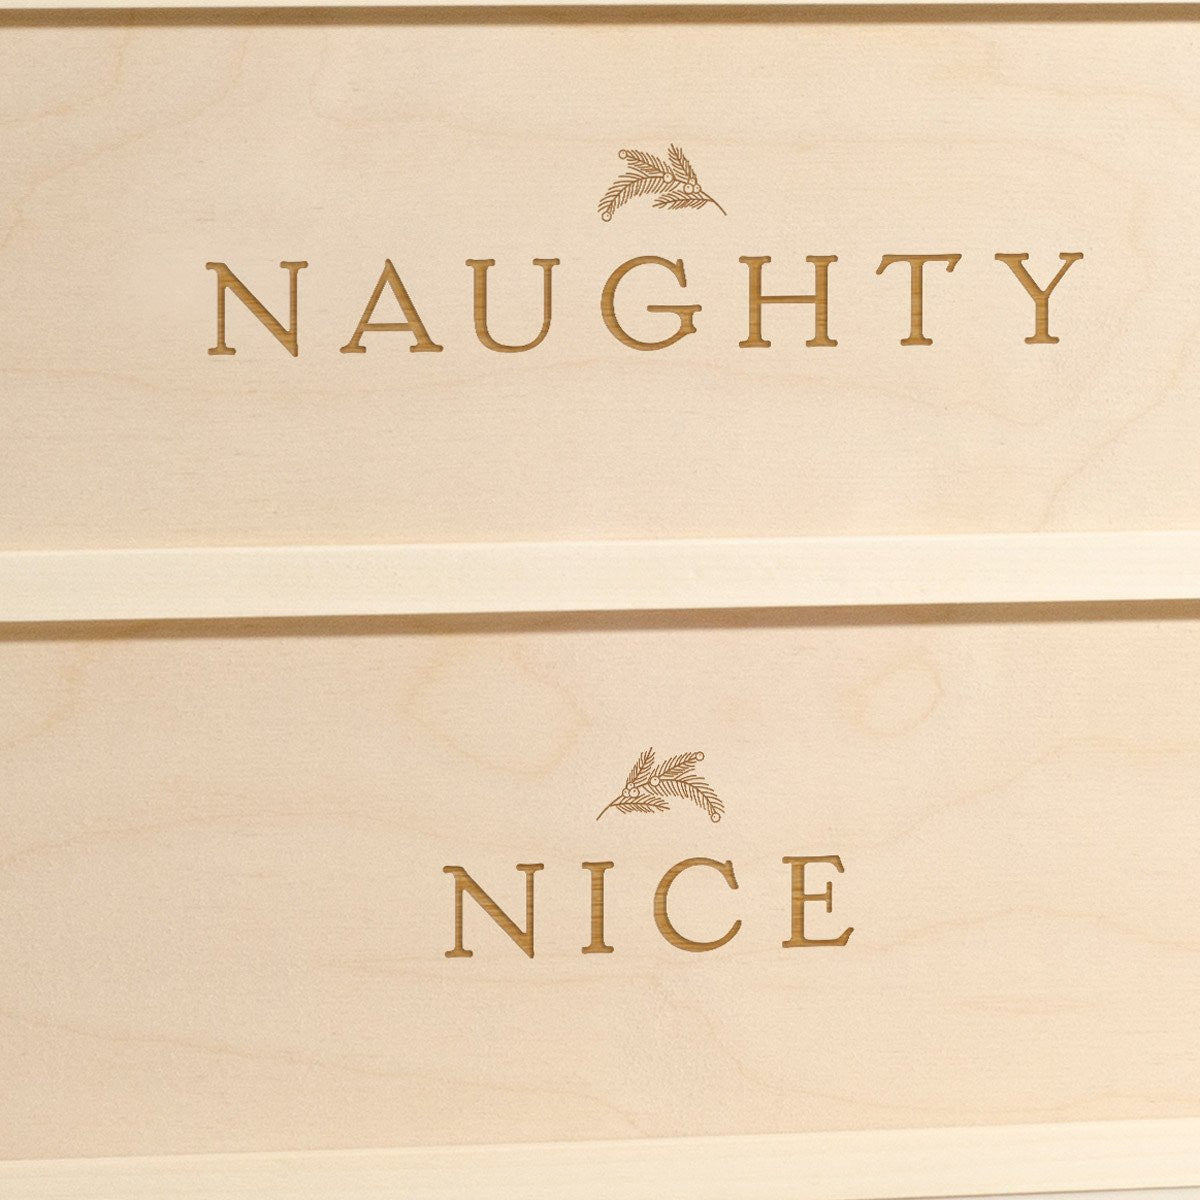 Naughty or Nice - Christmas Wine Box - Detail Image